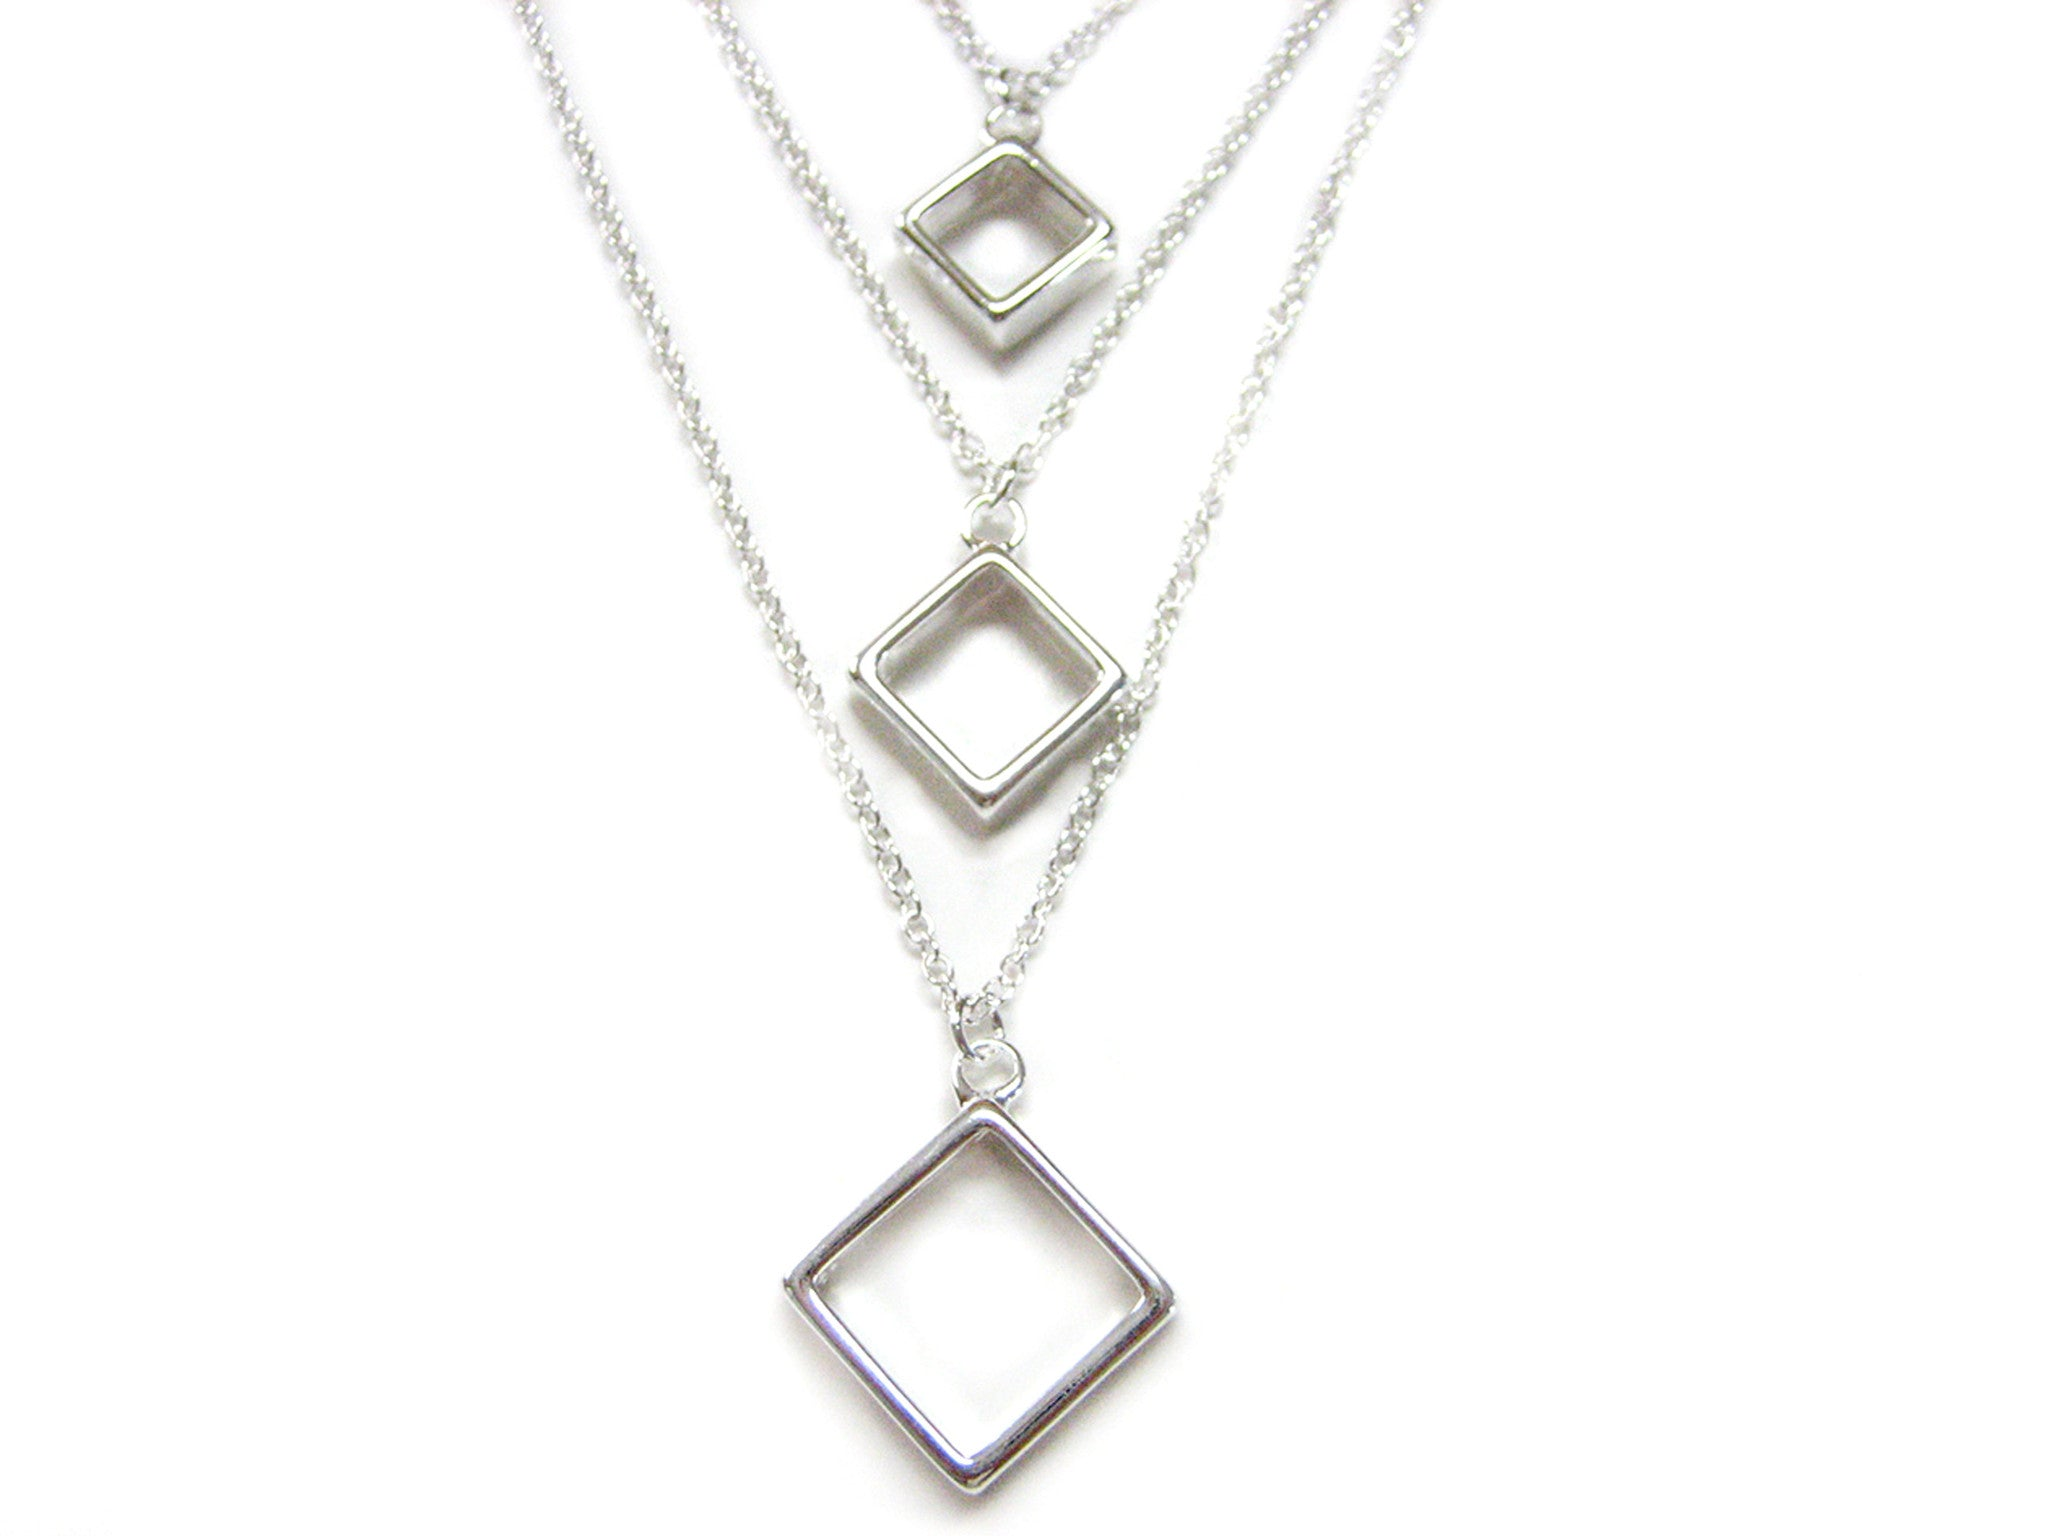 Tiered Square Pendant Necklace